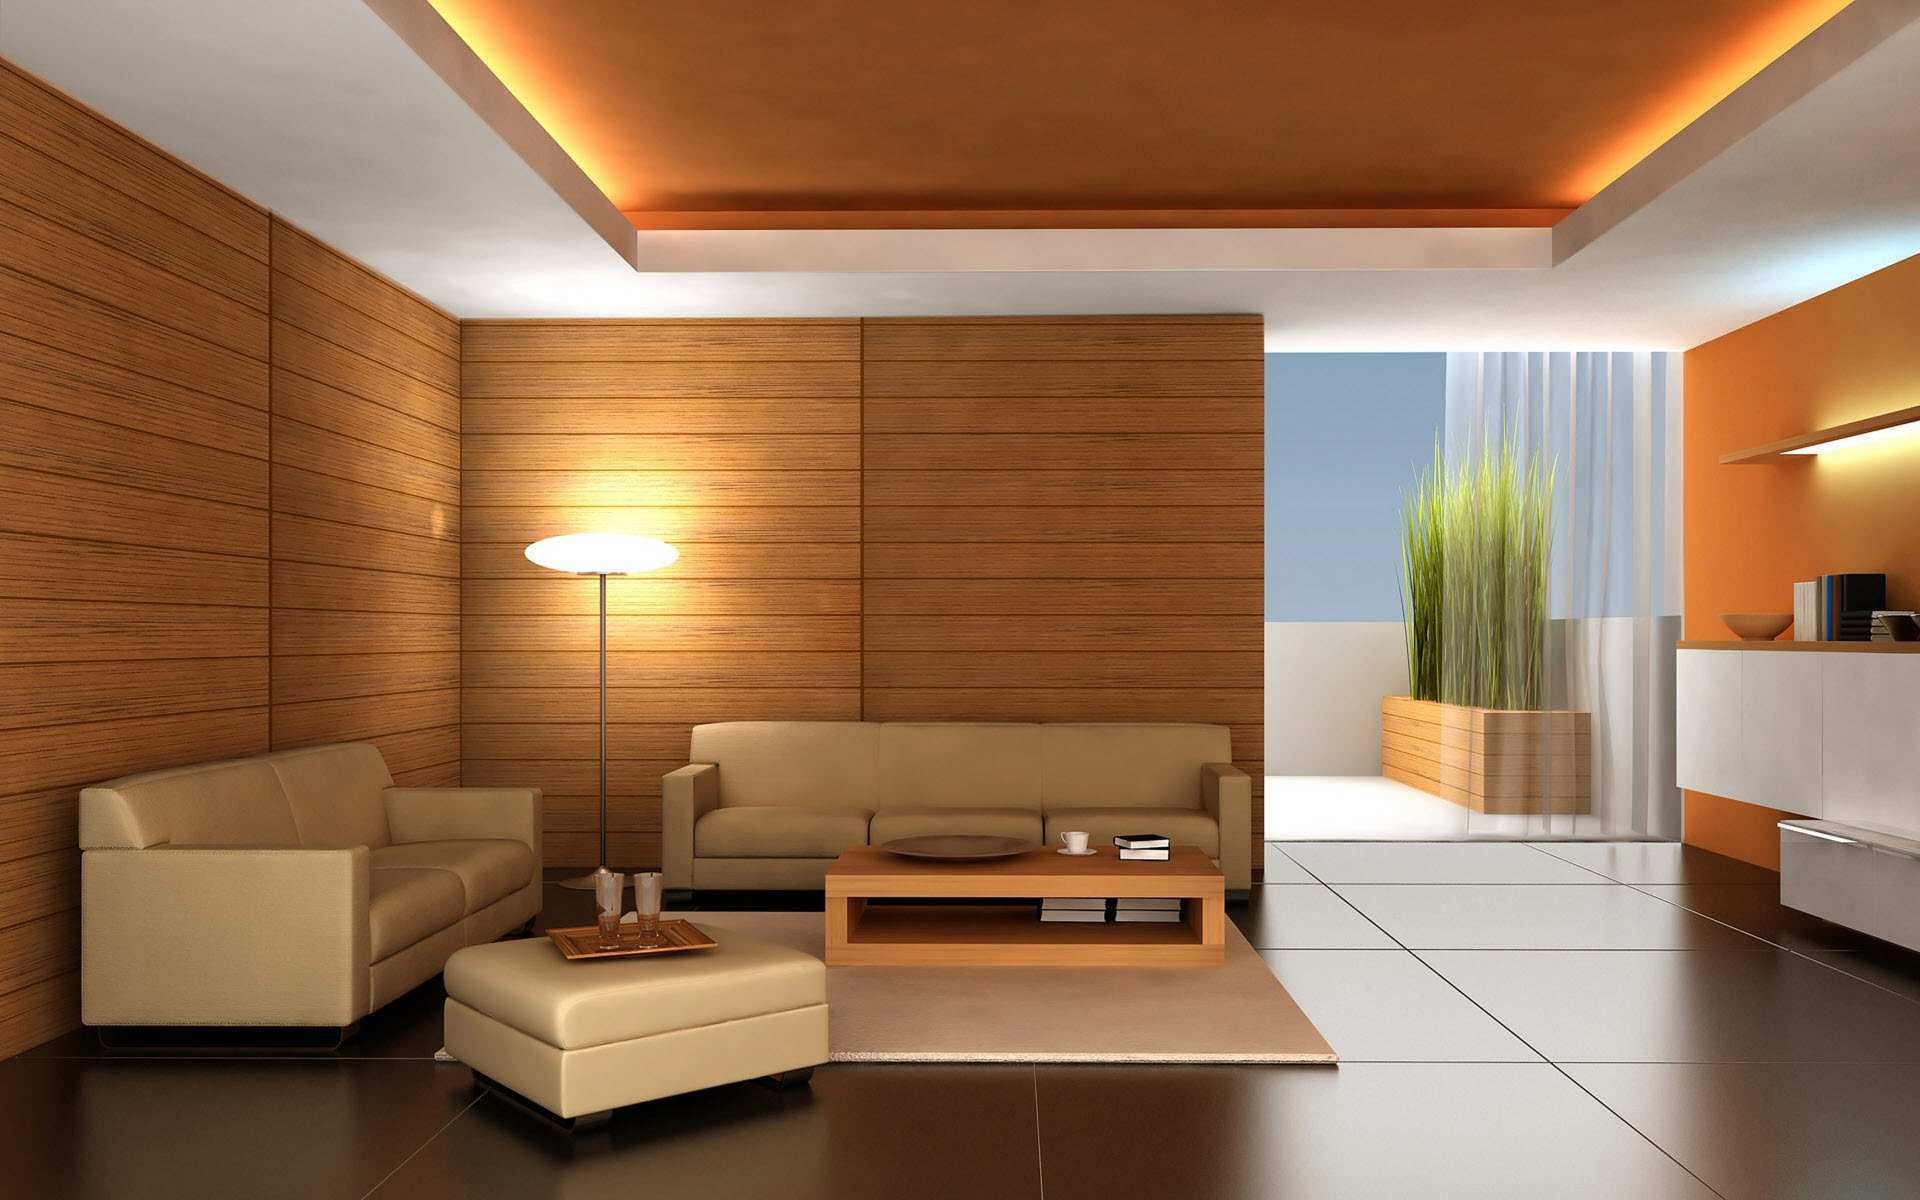 Living Room Design Modern Best House Design Interior And Exterior  Home Decor And Interior Decorating Design